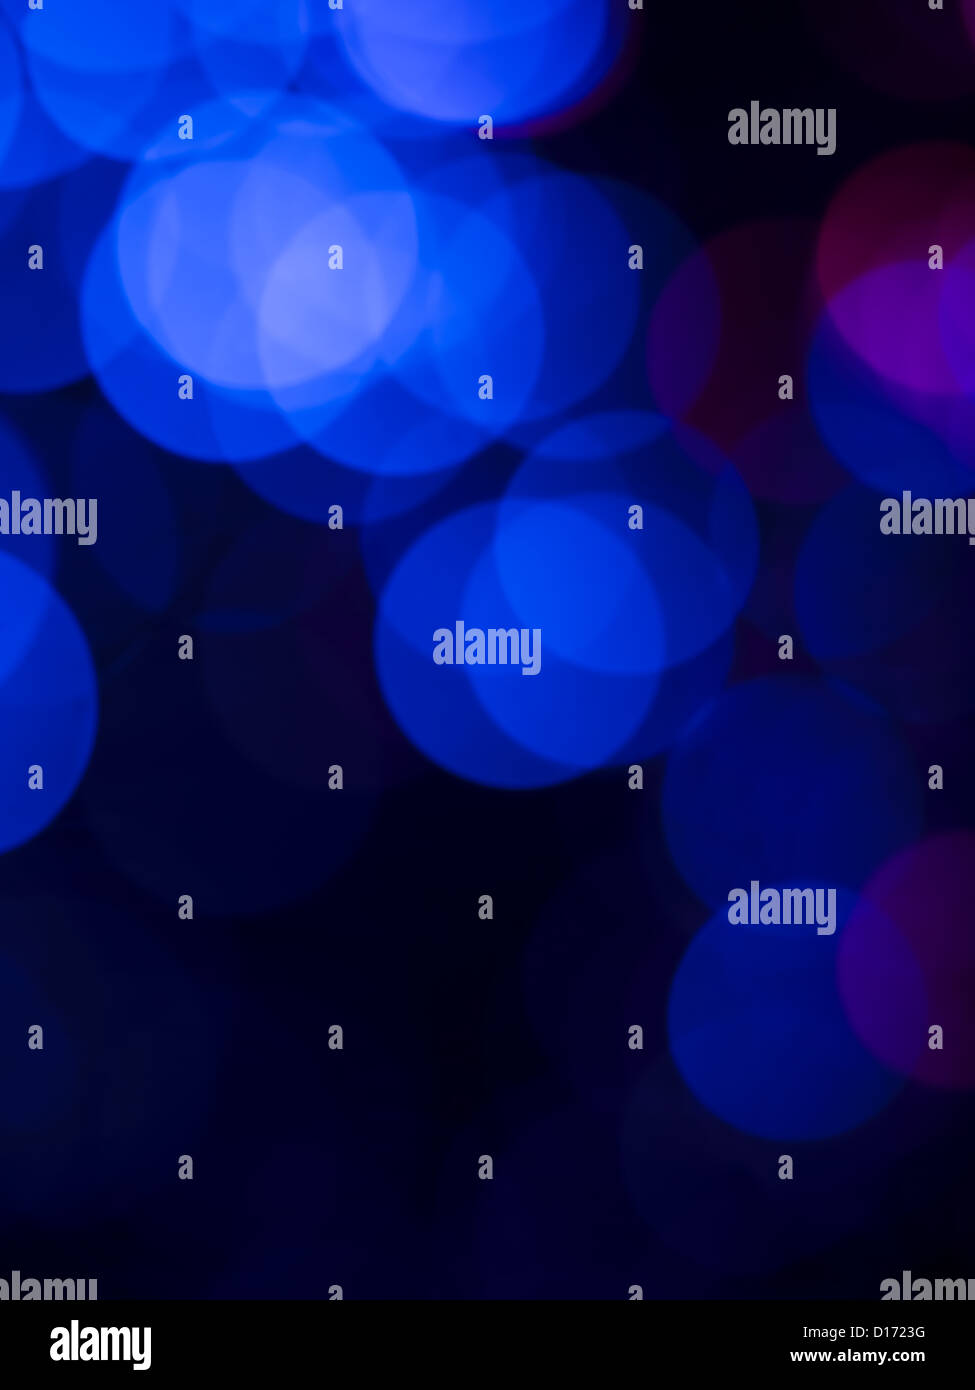 Conceptual Wallpaper With Defocused Round Shaped Blue Lights Fading